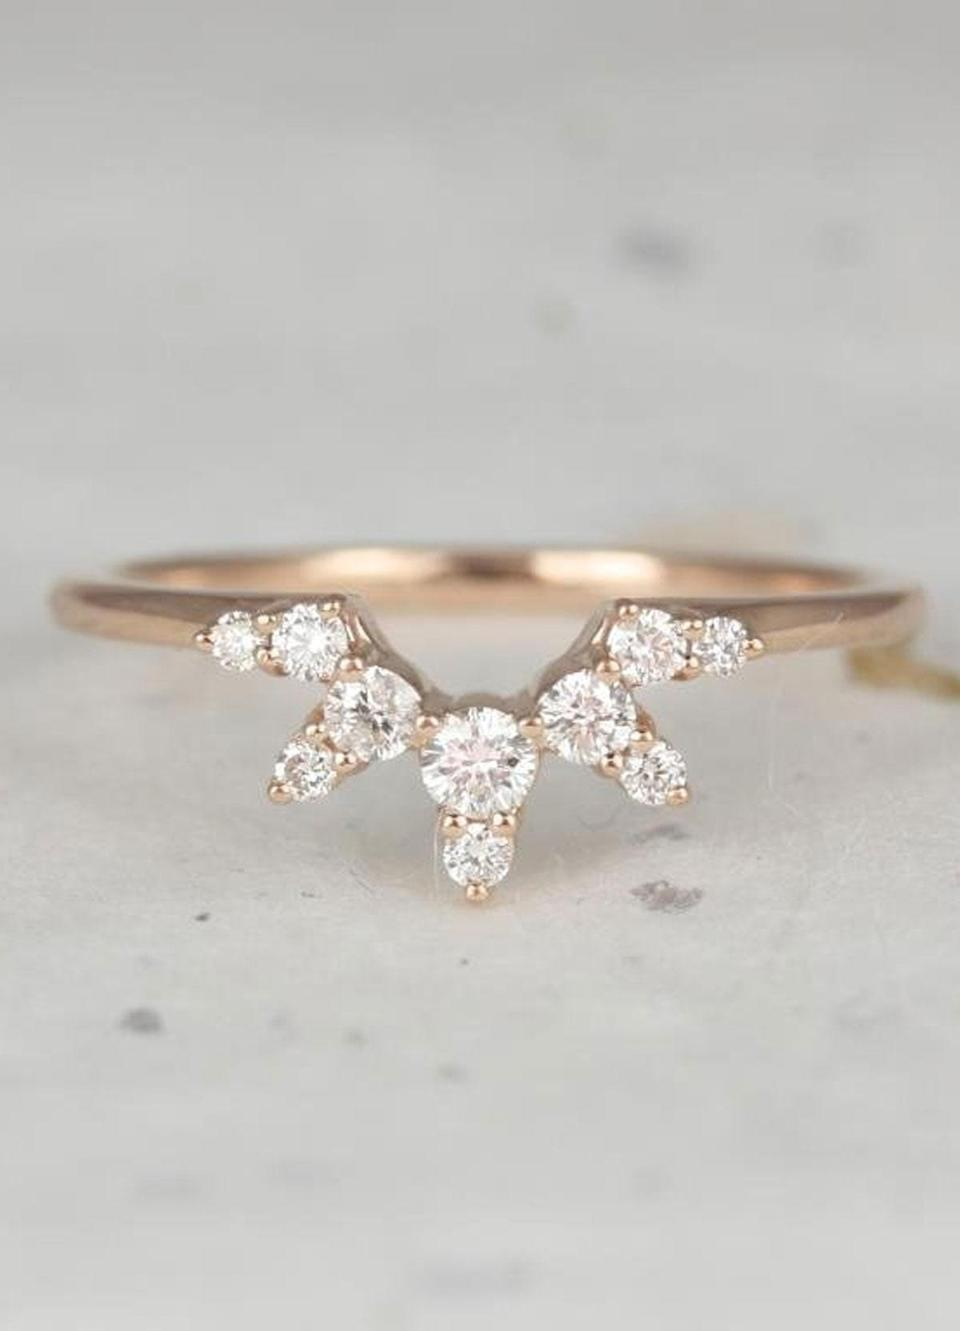 """Isom Johnson highlights nesting bands—stackable rings you layer with an engagement ring to enhance its shape or create a more embellished effect (also known as tiara bands or suits) as one of the most unique styles on the rise on Etsy. $695, Etsy. <a href=""""https://www.etsy.com/listing/662282149/rosados-box-lucia-14kt-rose-gold-tiara?ga_search_query=nesting&ref=shop_items_search_4&frs=1"""" rel=""""nofollow noopener"""" target=""""_blank"""" data-ylk=""""slk:Get it now!"""" class=""""link rapid-noclick-resp"""">Get it now!</a>"""